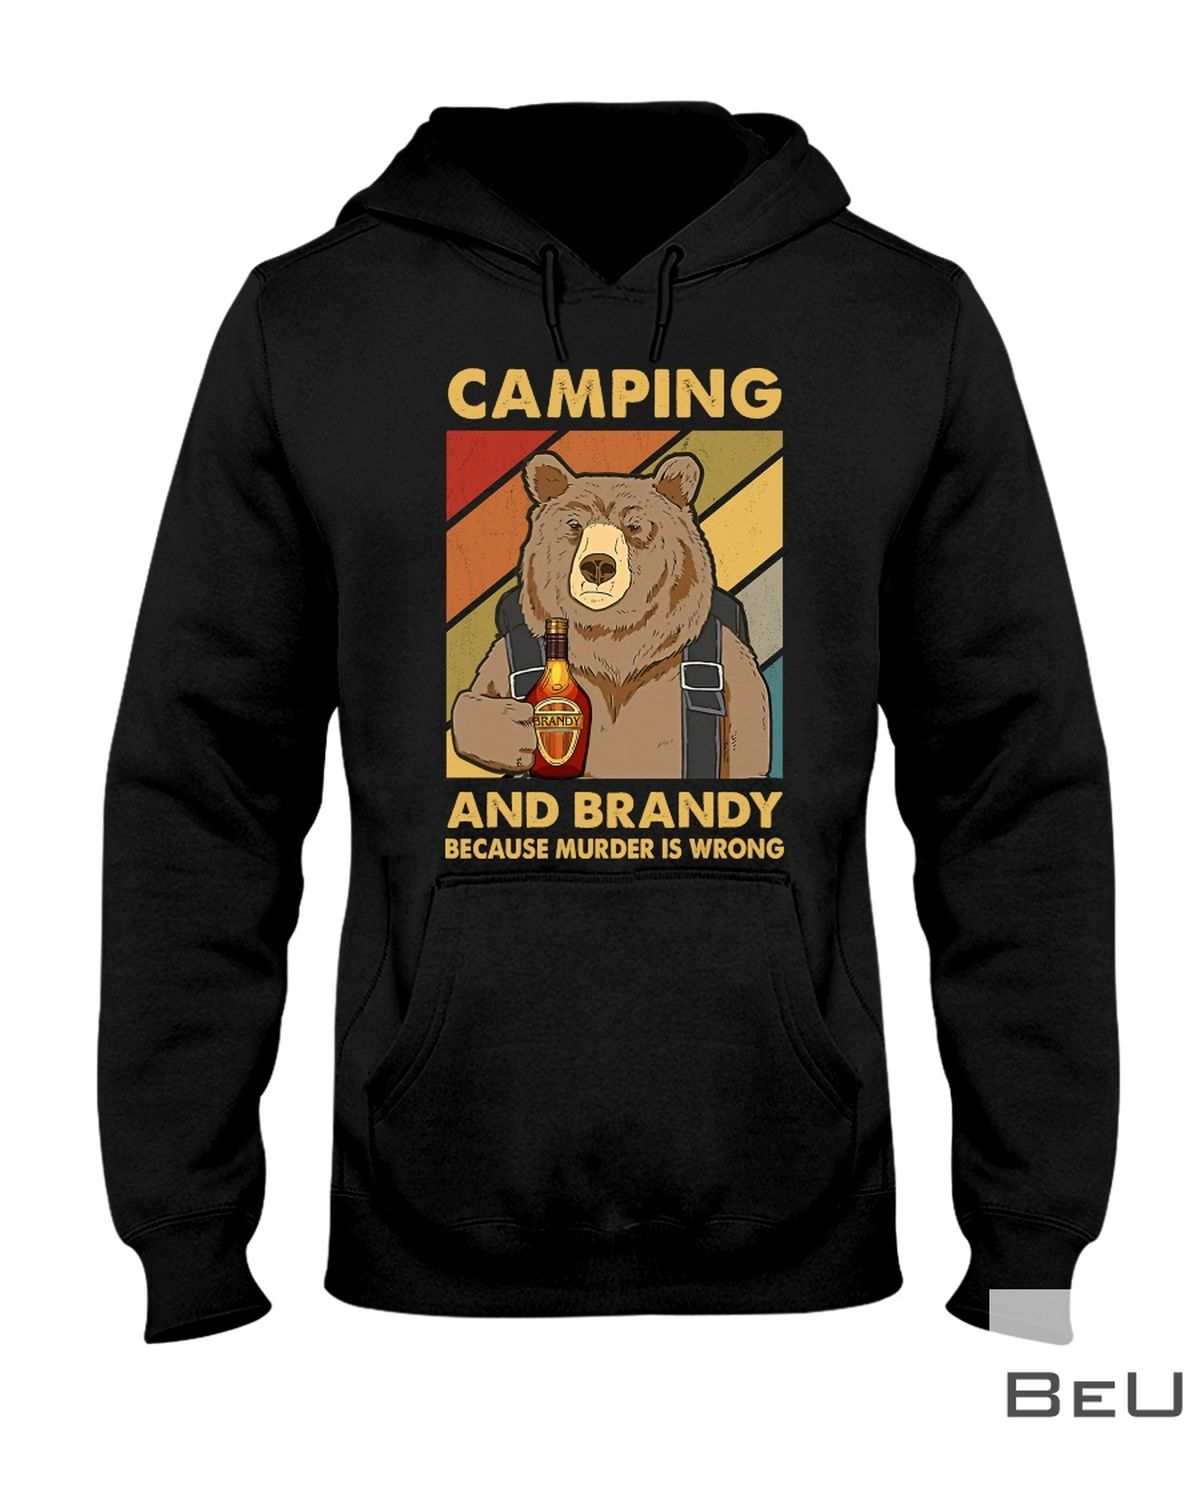 Camping And Brandy Because Murder Is Wrong Shirtx